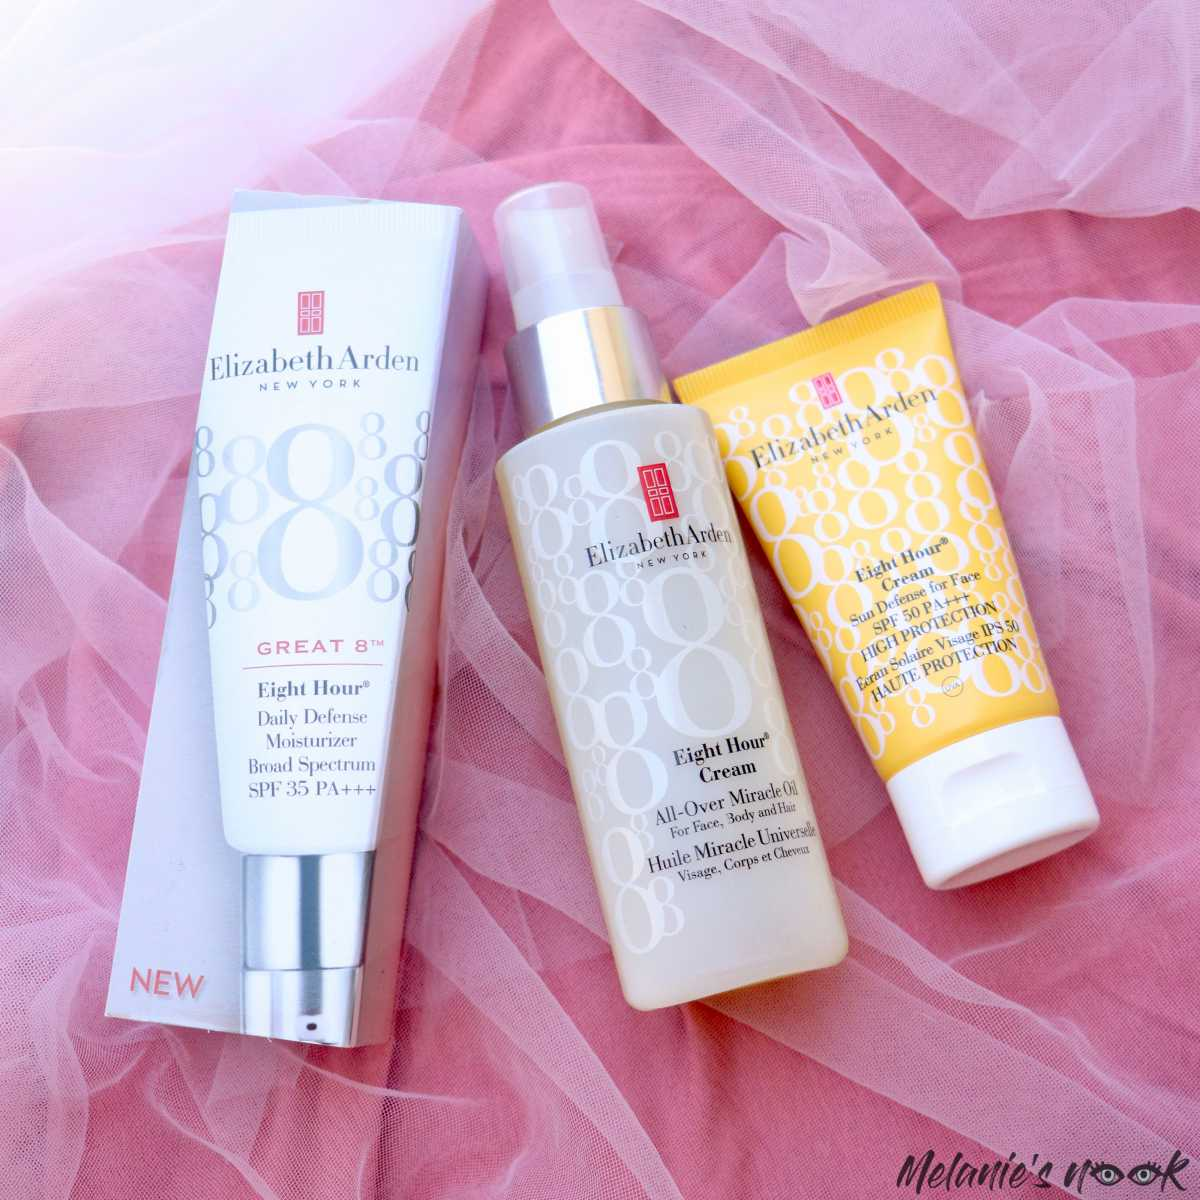 Elizabeth Arden Gift with Purchase 2020 - 8 hour